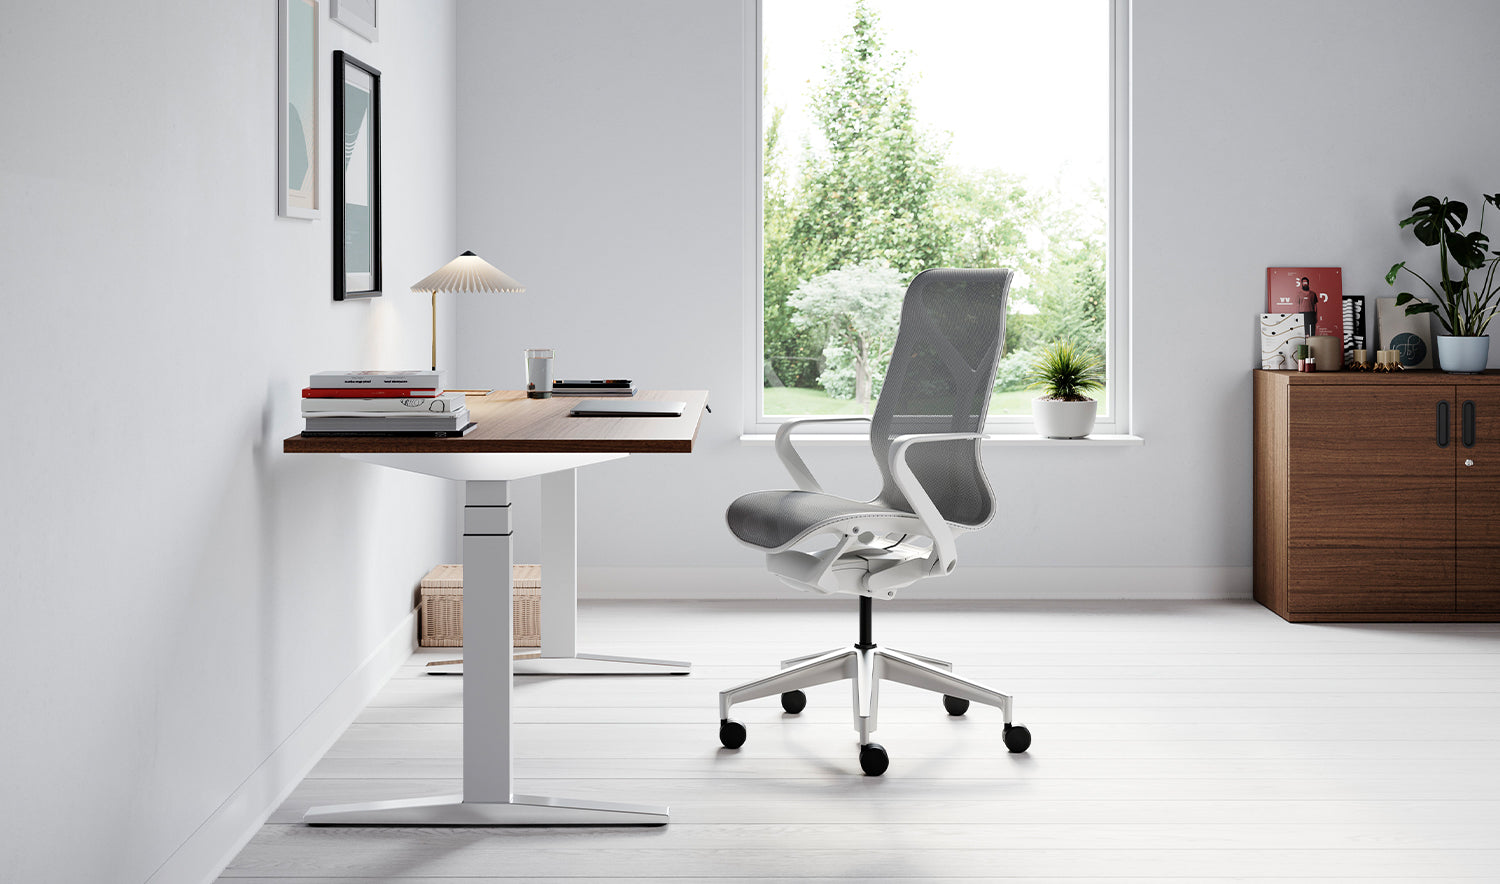 Grey and white Cosm chair next to a Ratio sit stand desk in a home office setting